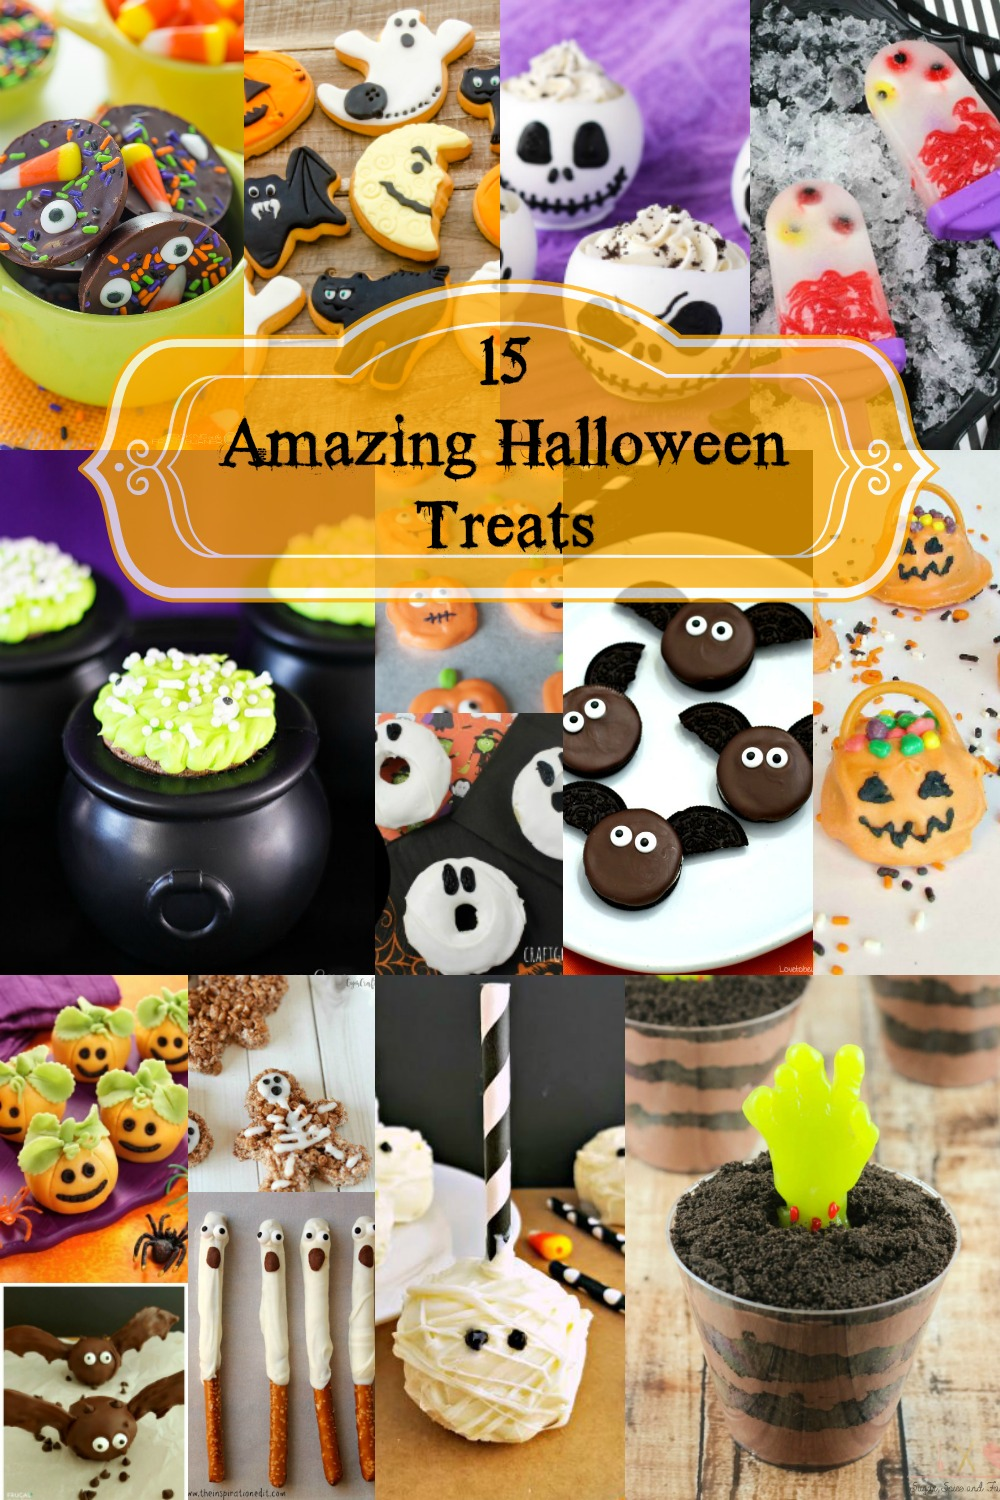 I have gathered 15 amazing Halloween treats that are sure to be a hit at your